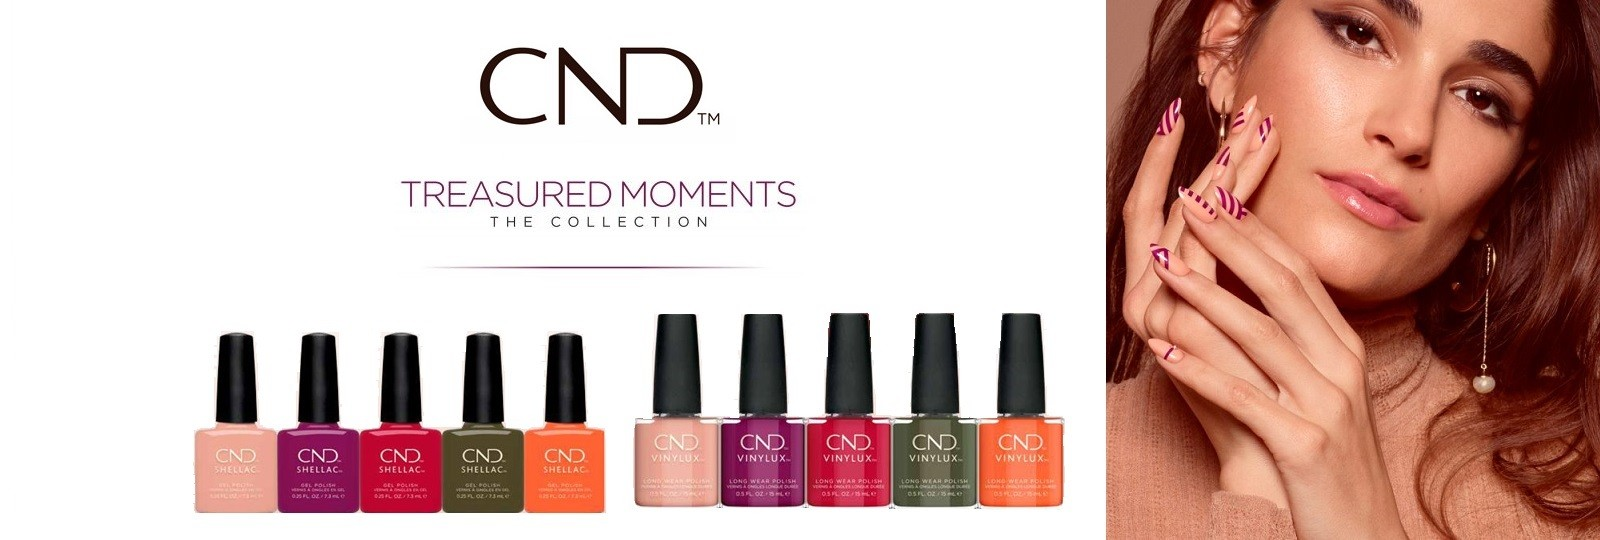 CND SHELLAC Treasured Moments